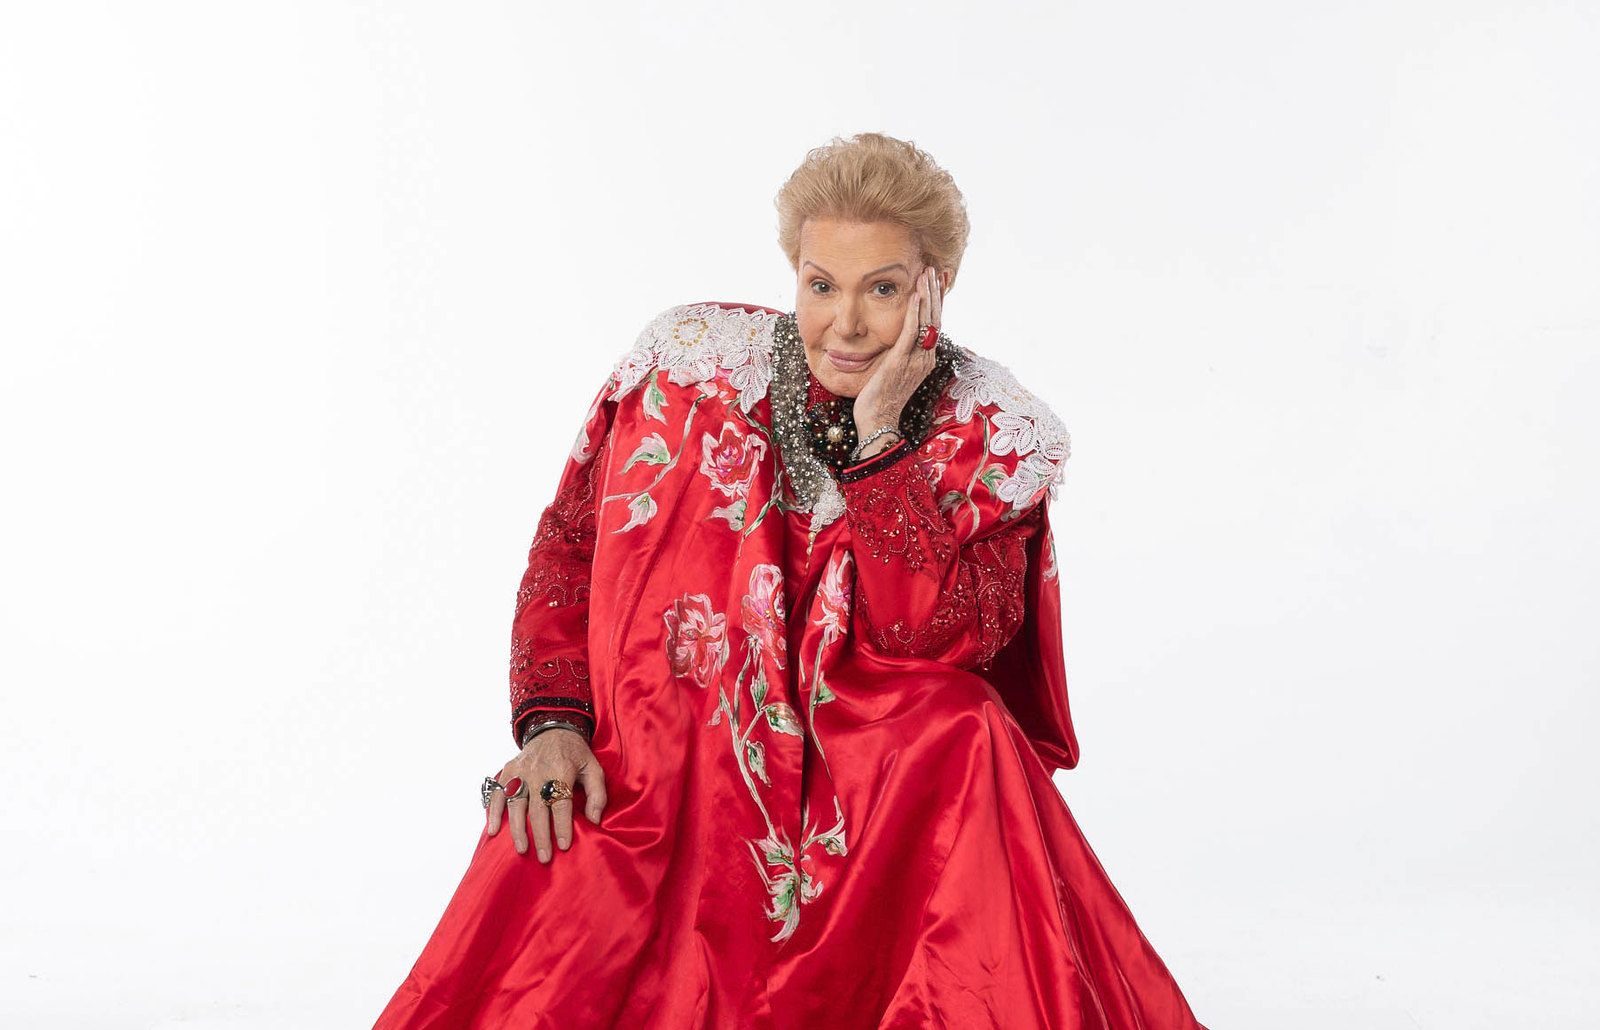 REVIEW: Walter Mercado Doc 'Mucho Mucho Amor' Is A Fabulous Celebration of the Puerto Rican Astrologer